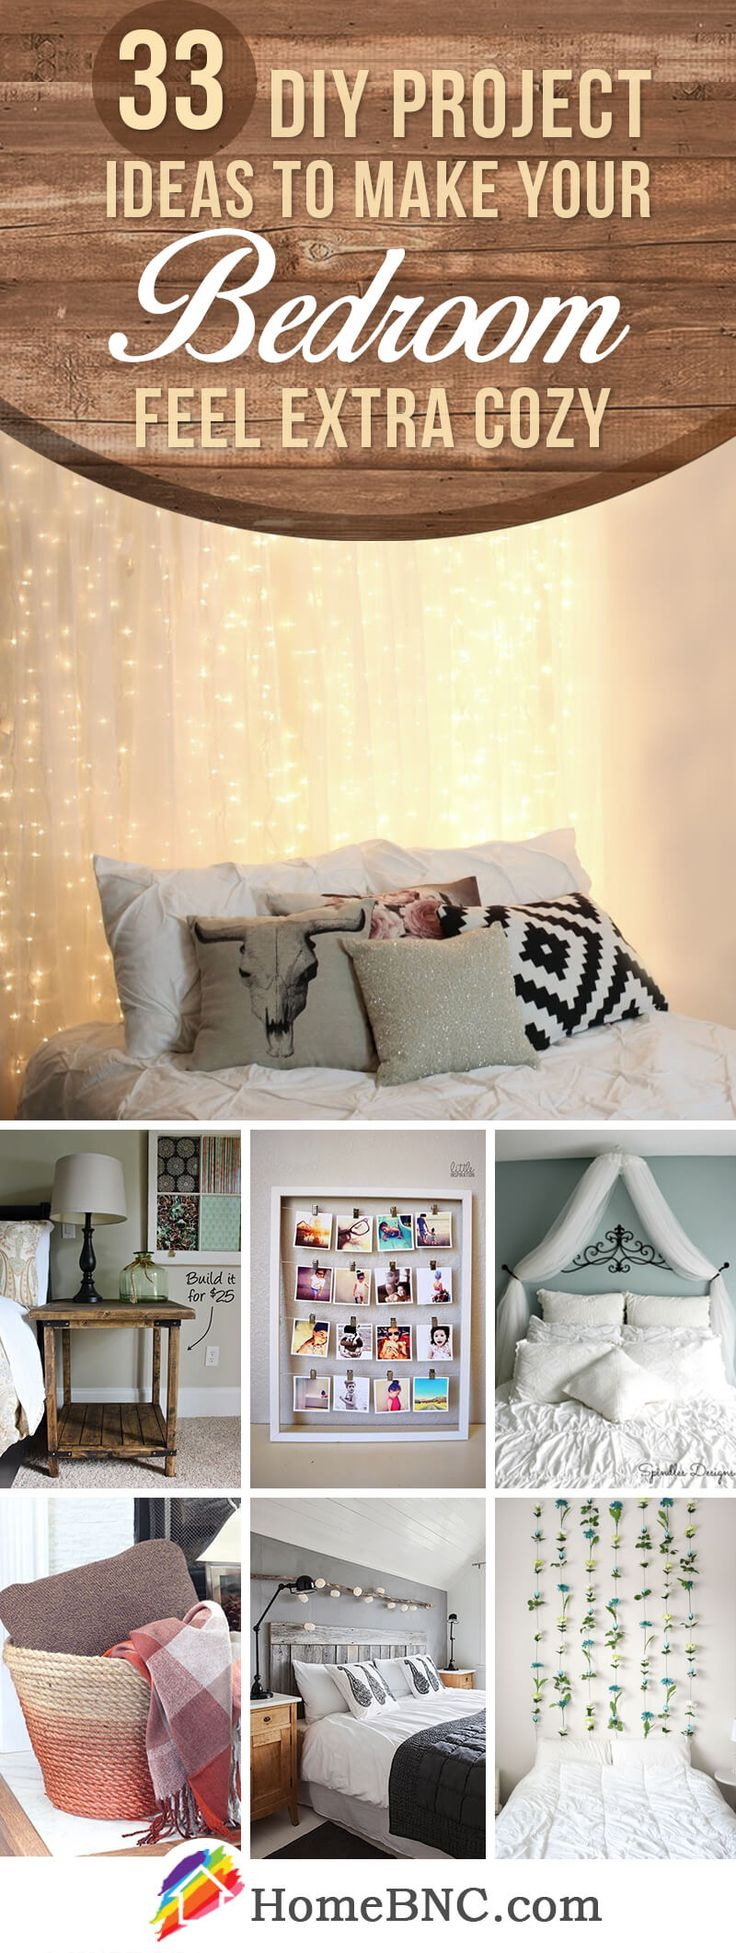 How to make bedroom